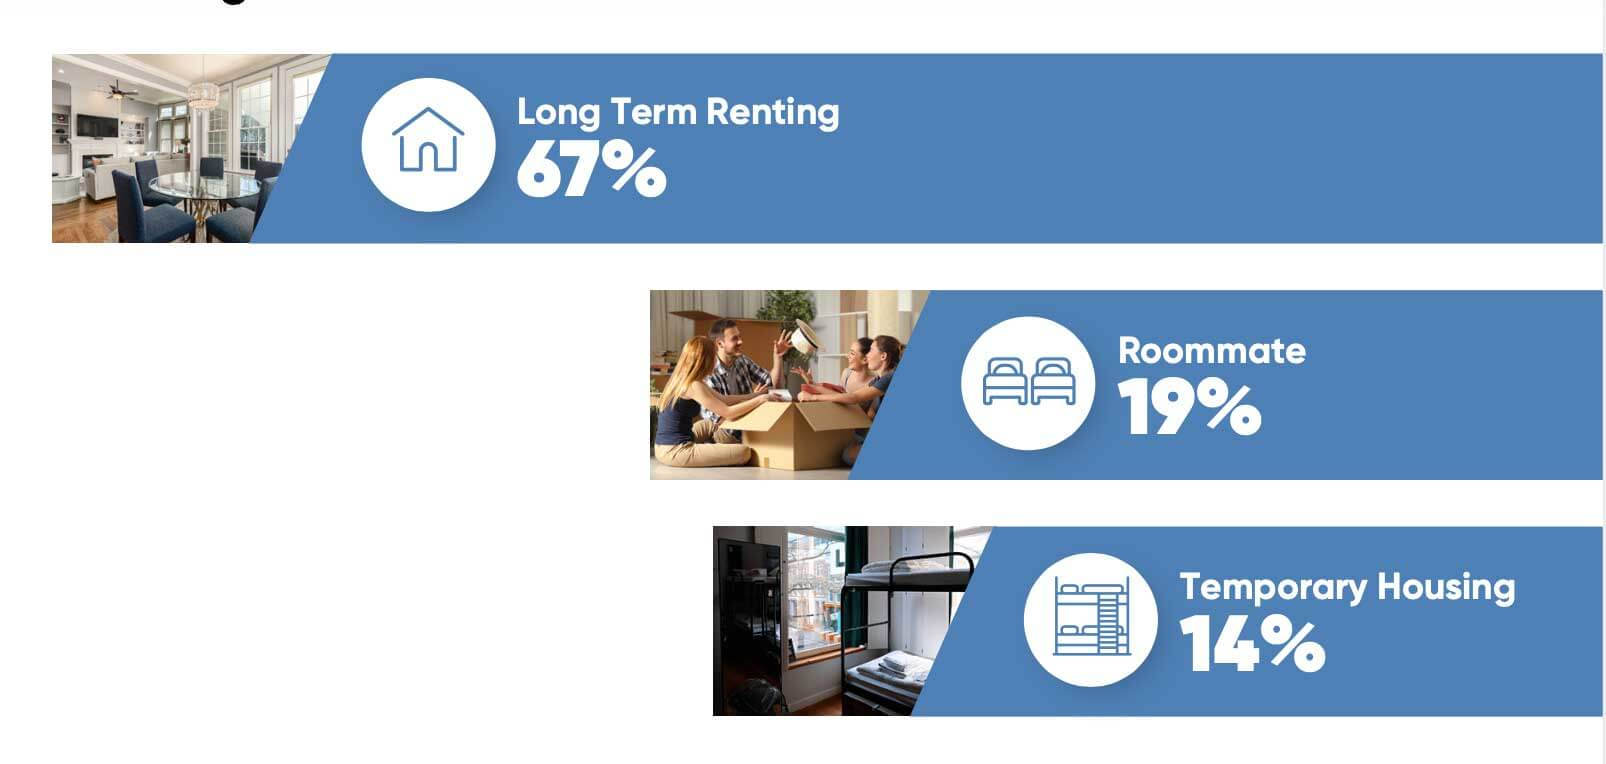 A screenshot showing statistics in long term home renting and temporary housing with roommates